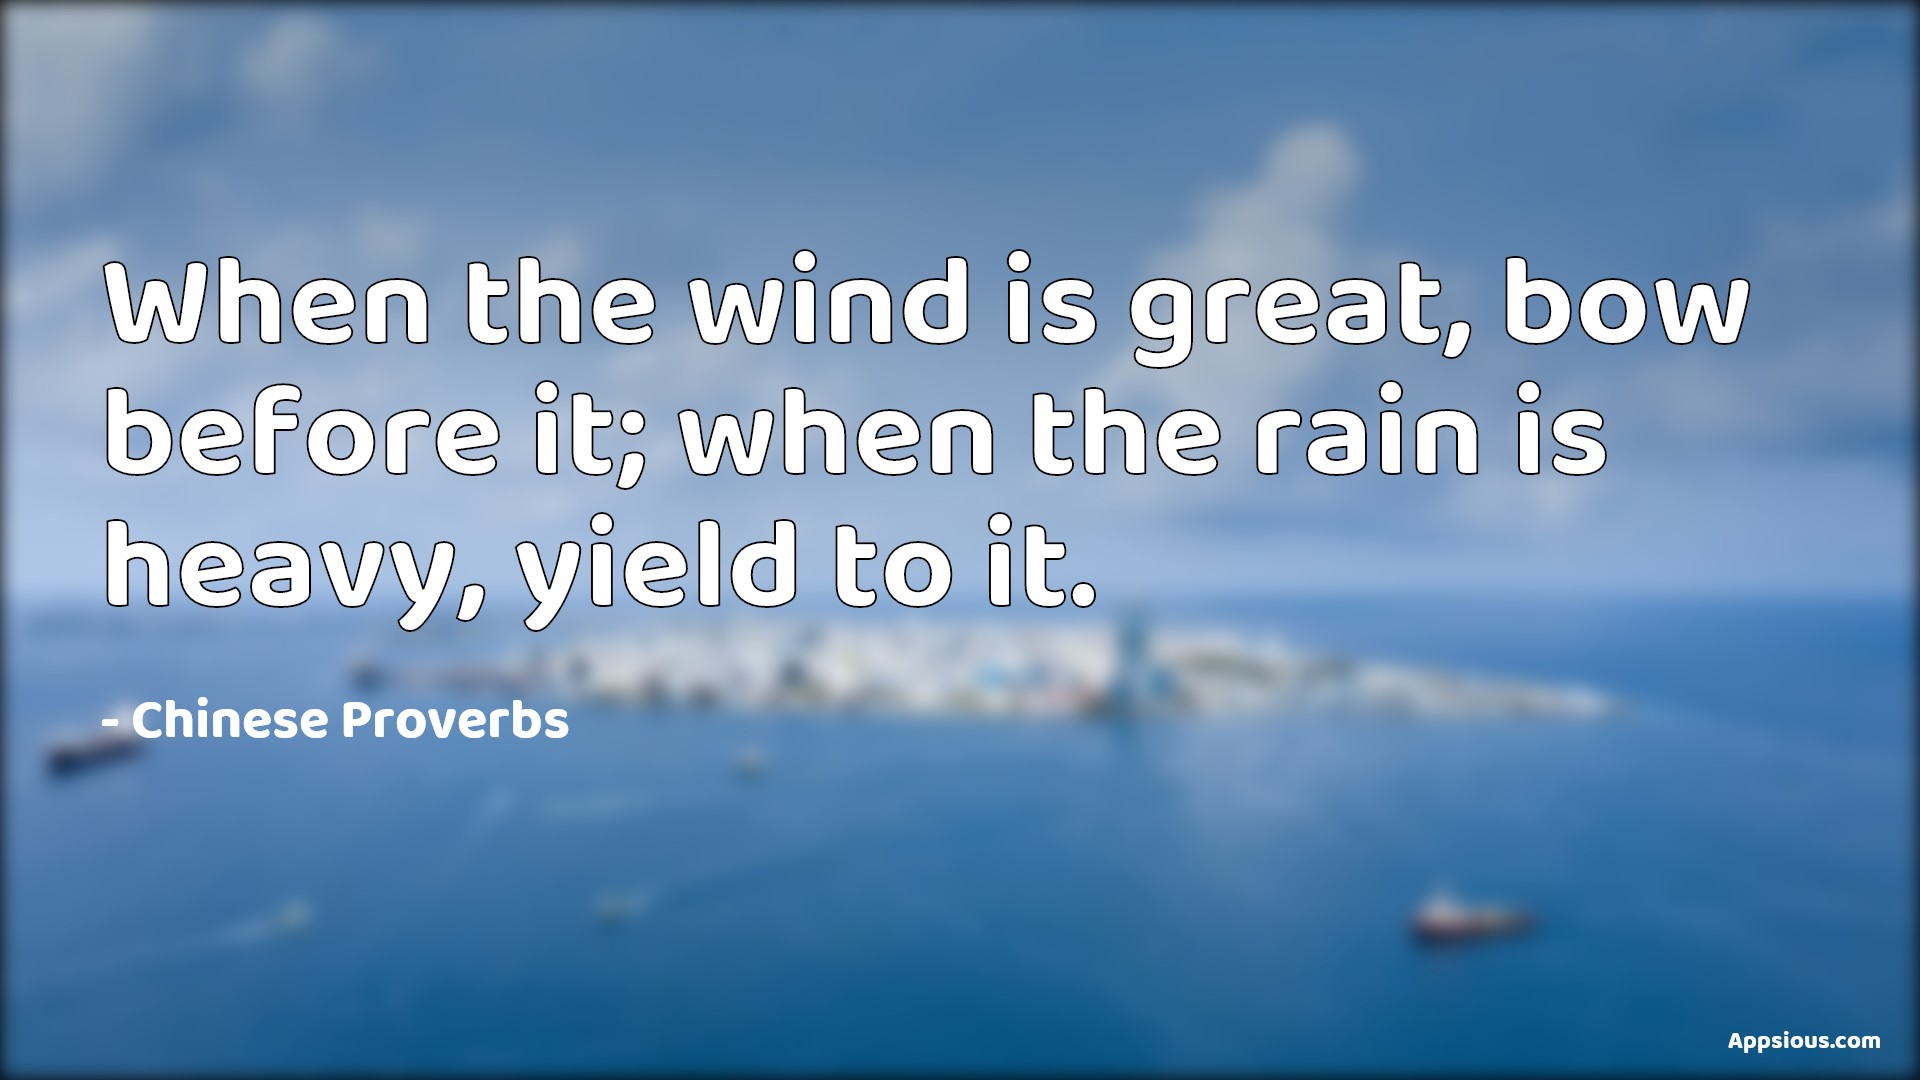 When the wind is great, bow before it; when the rain is heavy, yield to it.